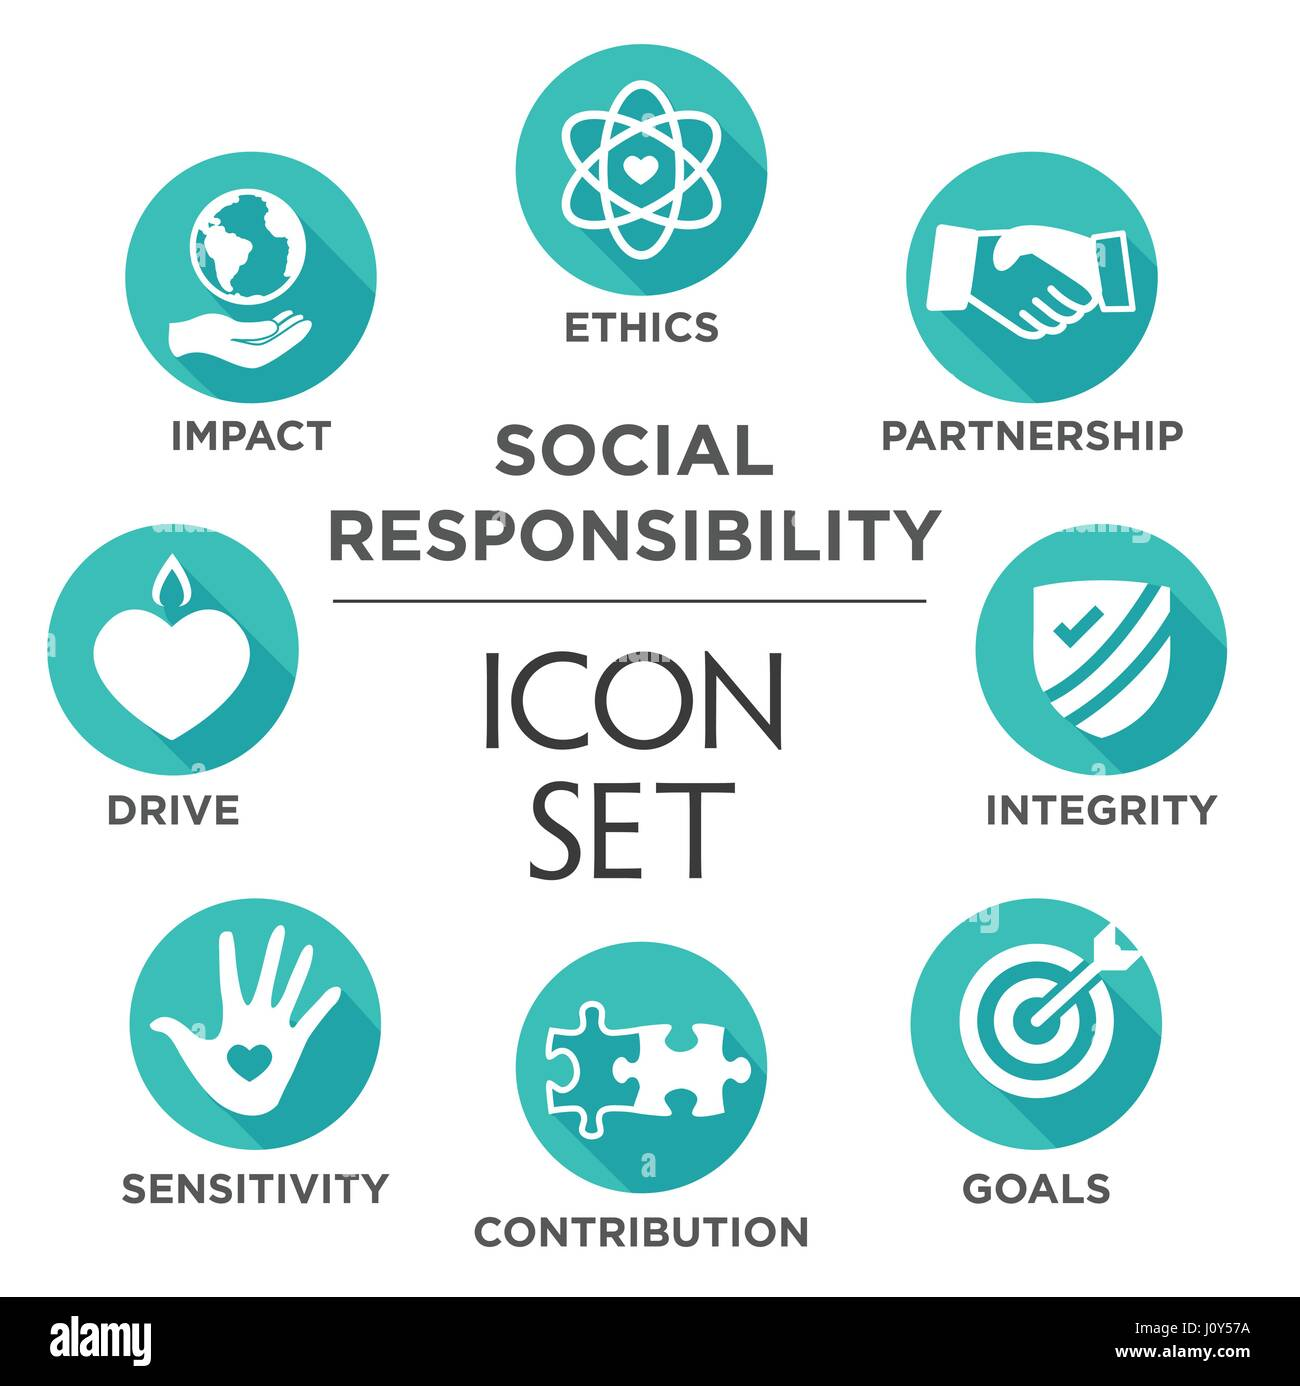 Social Responsibility Solid Icon Set with Impact, Ethics, Partnership, drive, etc - Stock Image